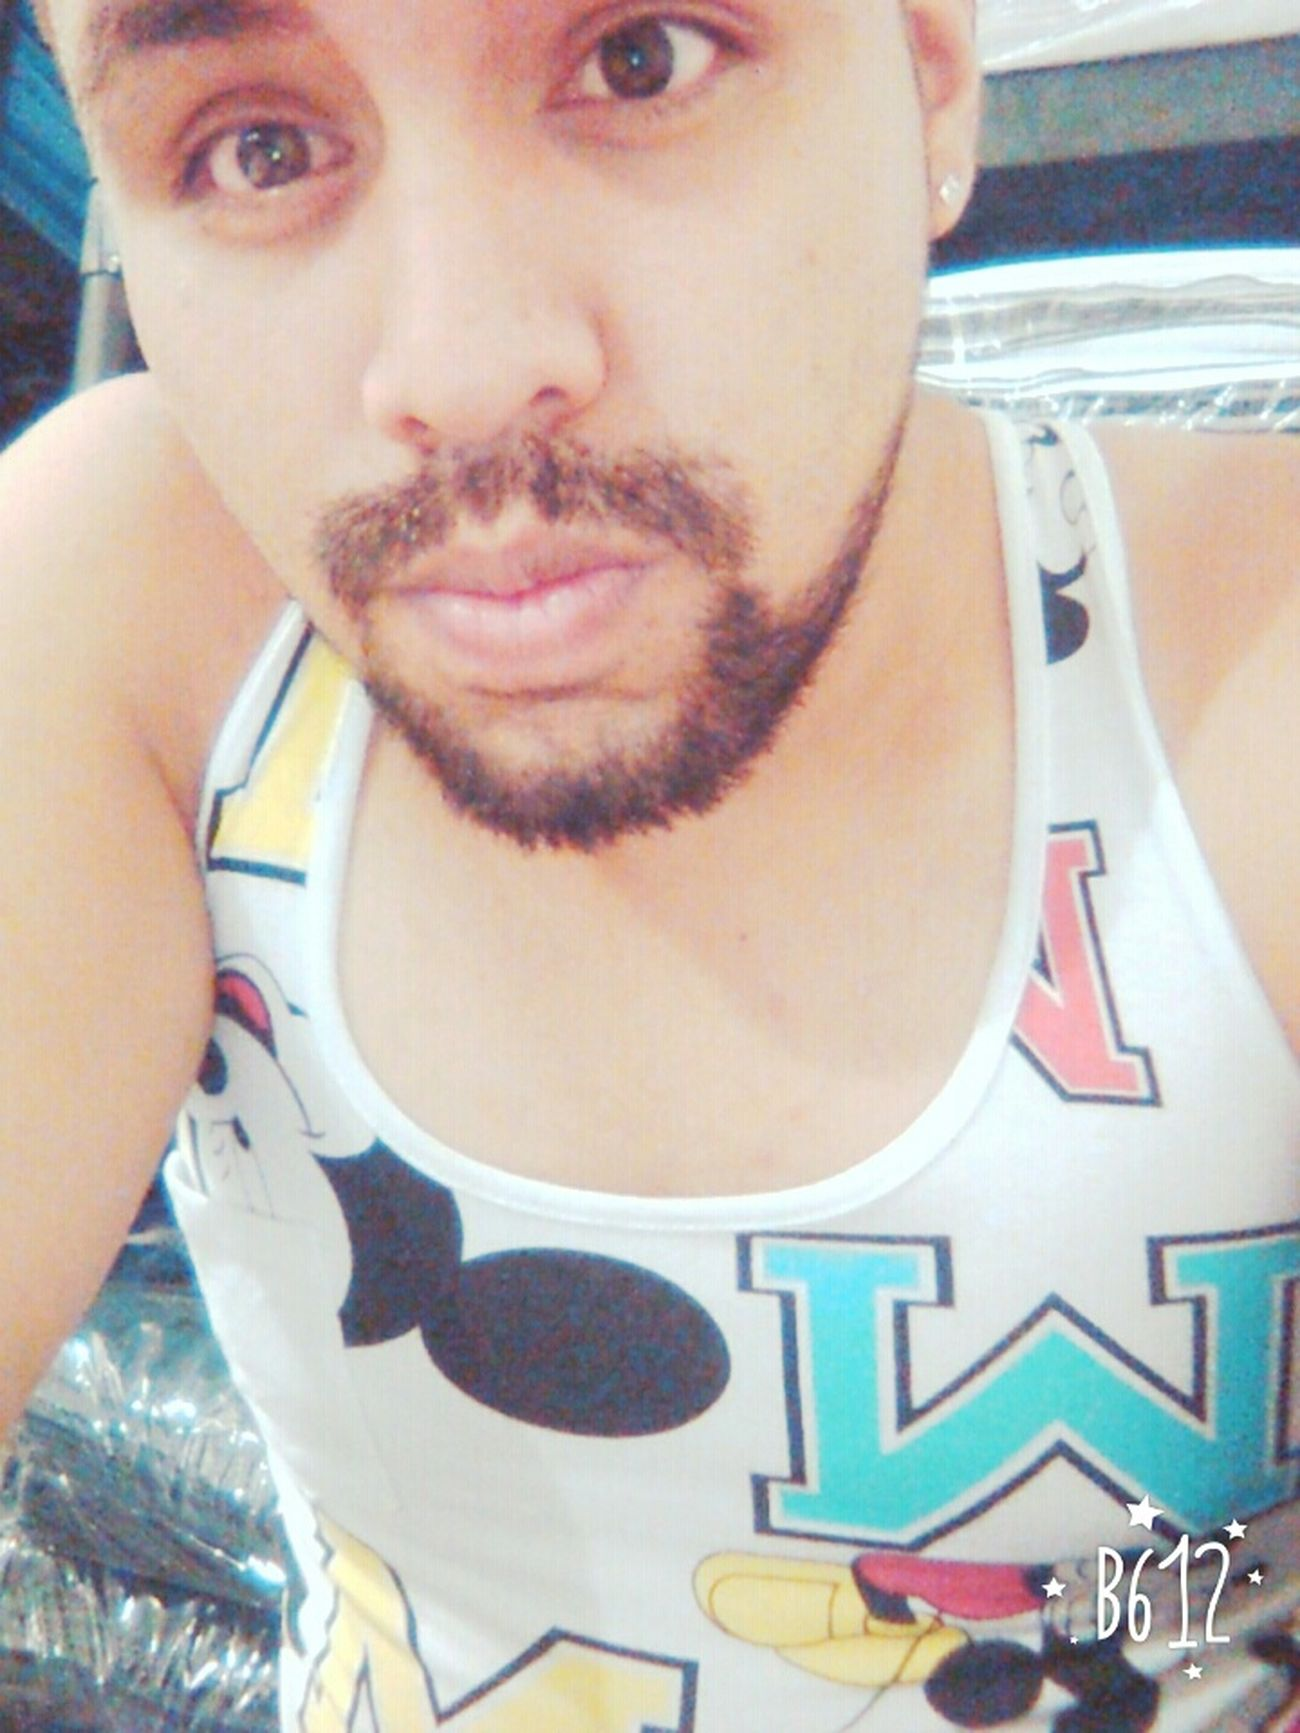 Barba Ojitos<3 Intafashion Instagay Instalike Mexicano Gay Intalove Bornthisway Gaymexican Instagood